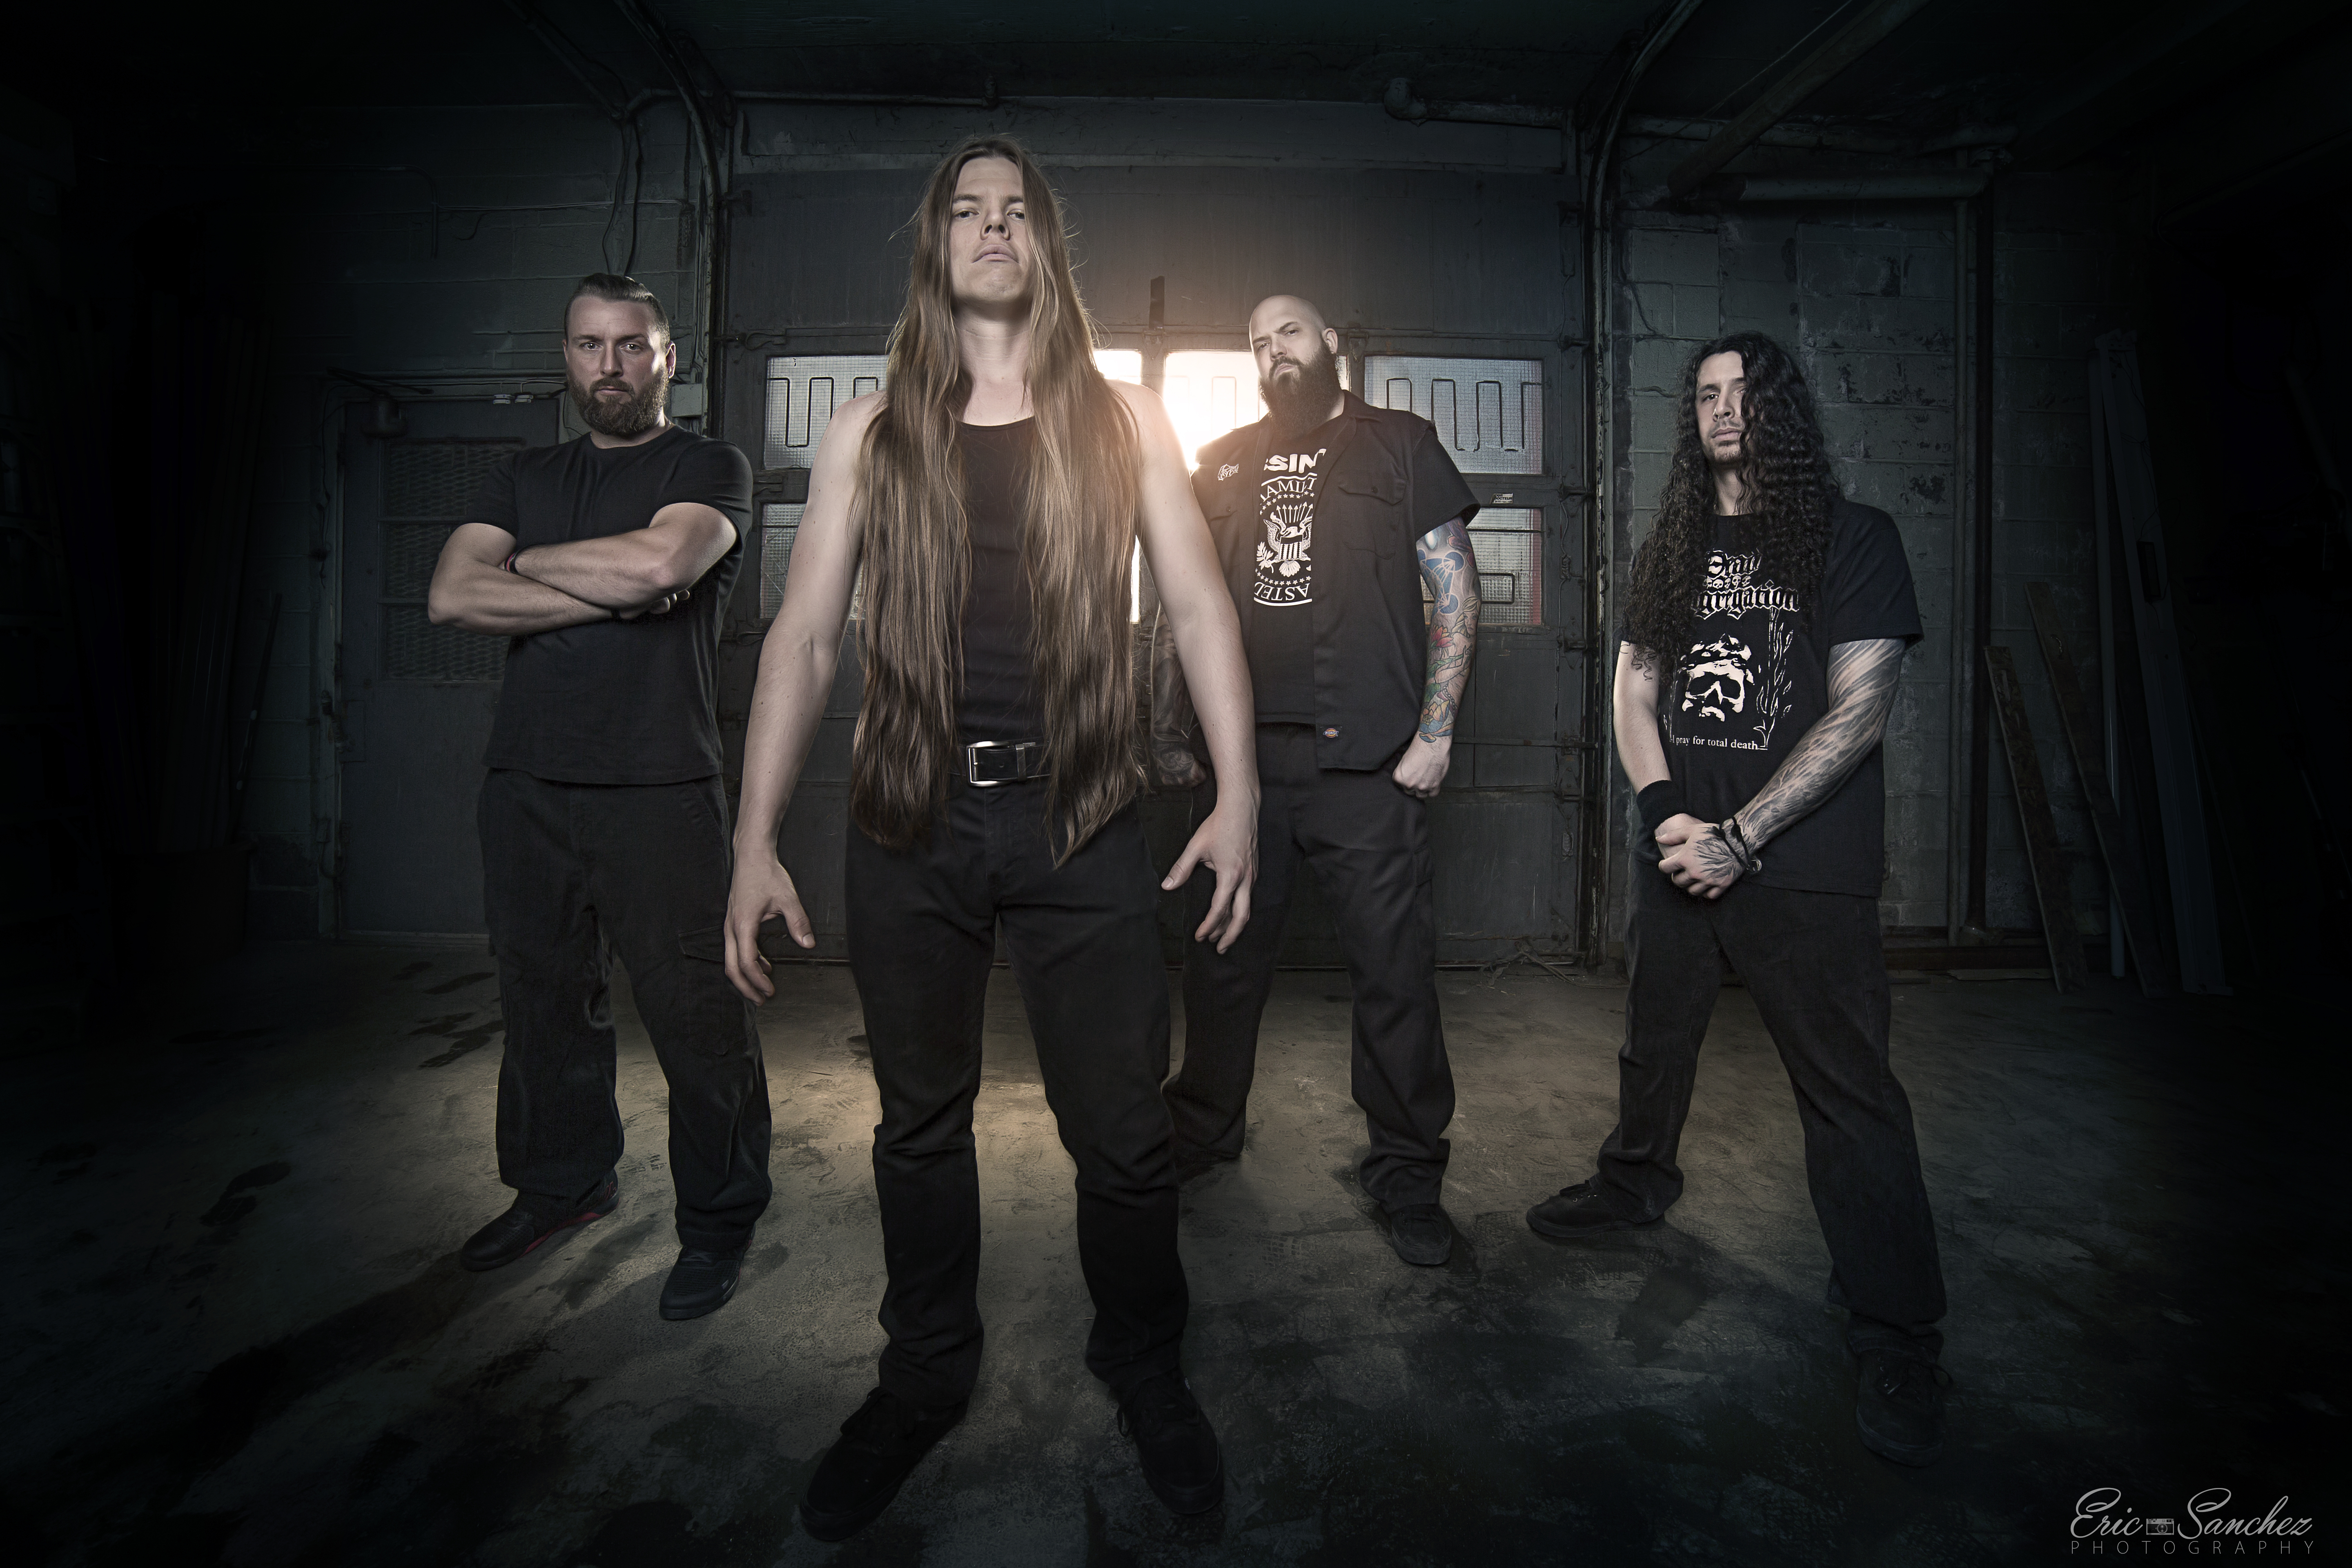 Cryptopsy to Tour Europe with Support of Ingested, Gloryhole Guillotine, and More